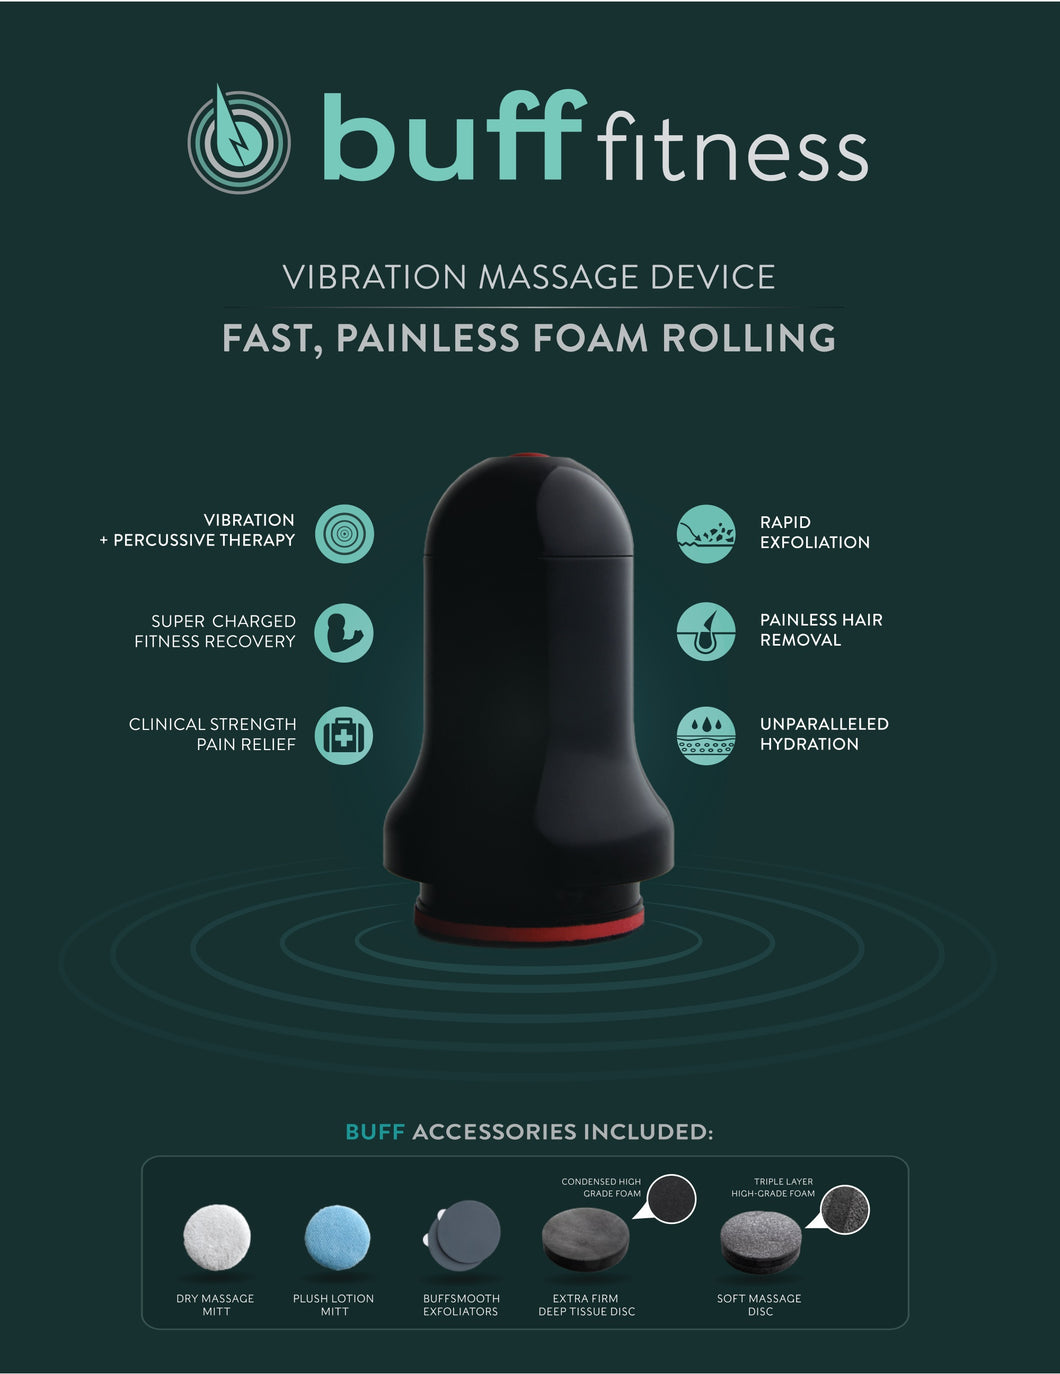 NEW!!! - BUFF fitness